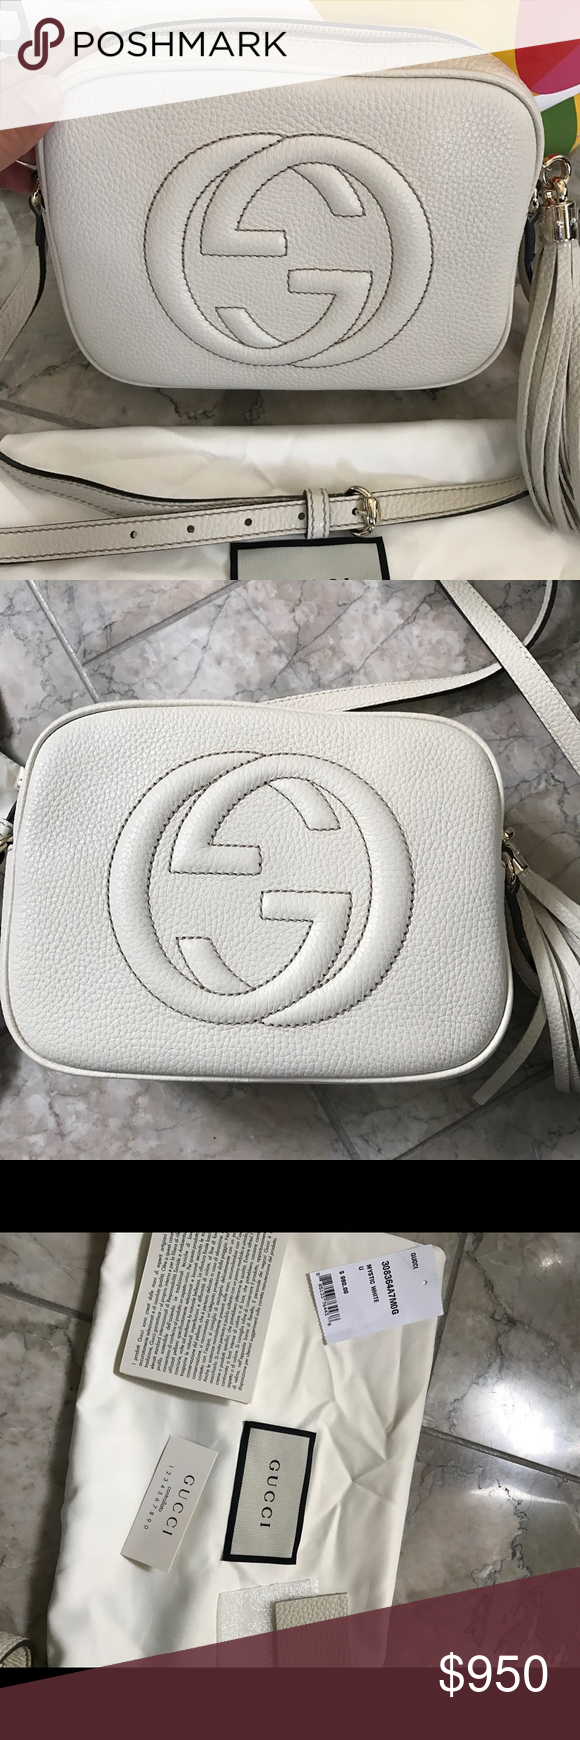 c16208e19c3 New with tag Gucci soho camera bag NEW WITH AUTHENTICITY PAPERS AND DUST  COVER GUCCI LADIES